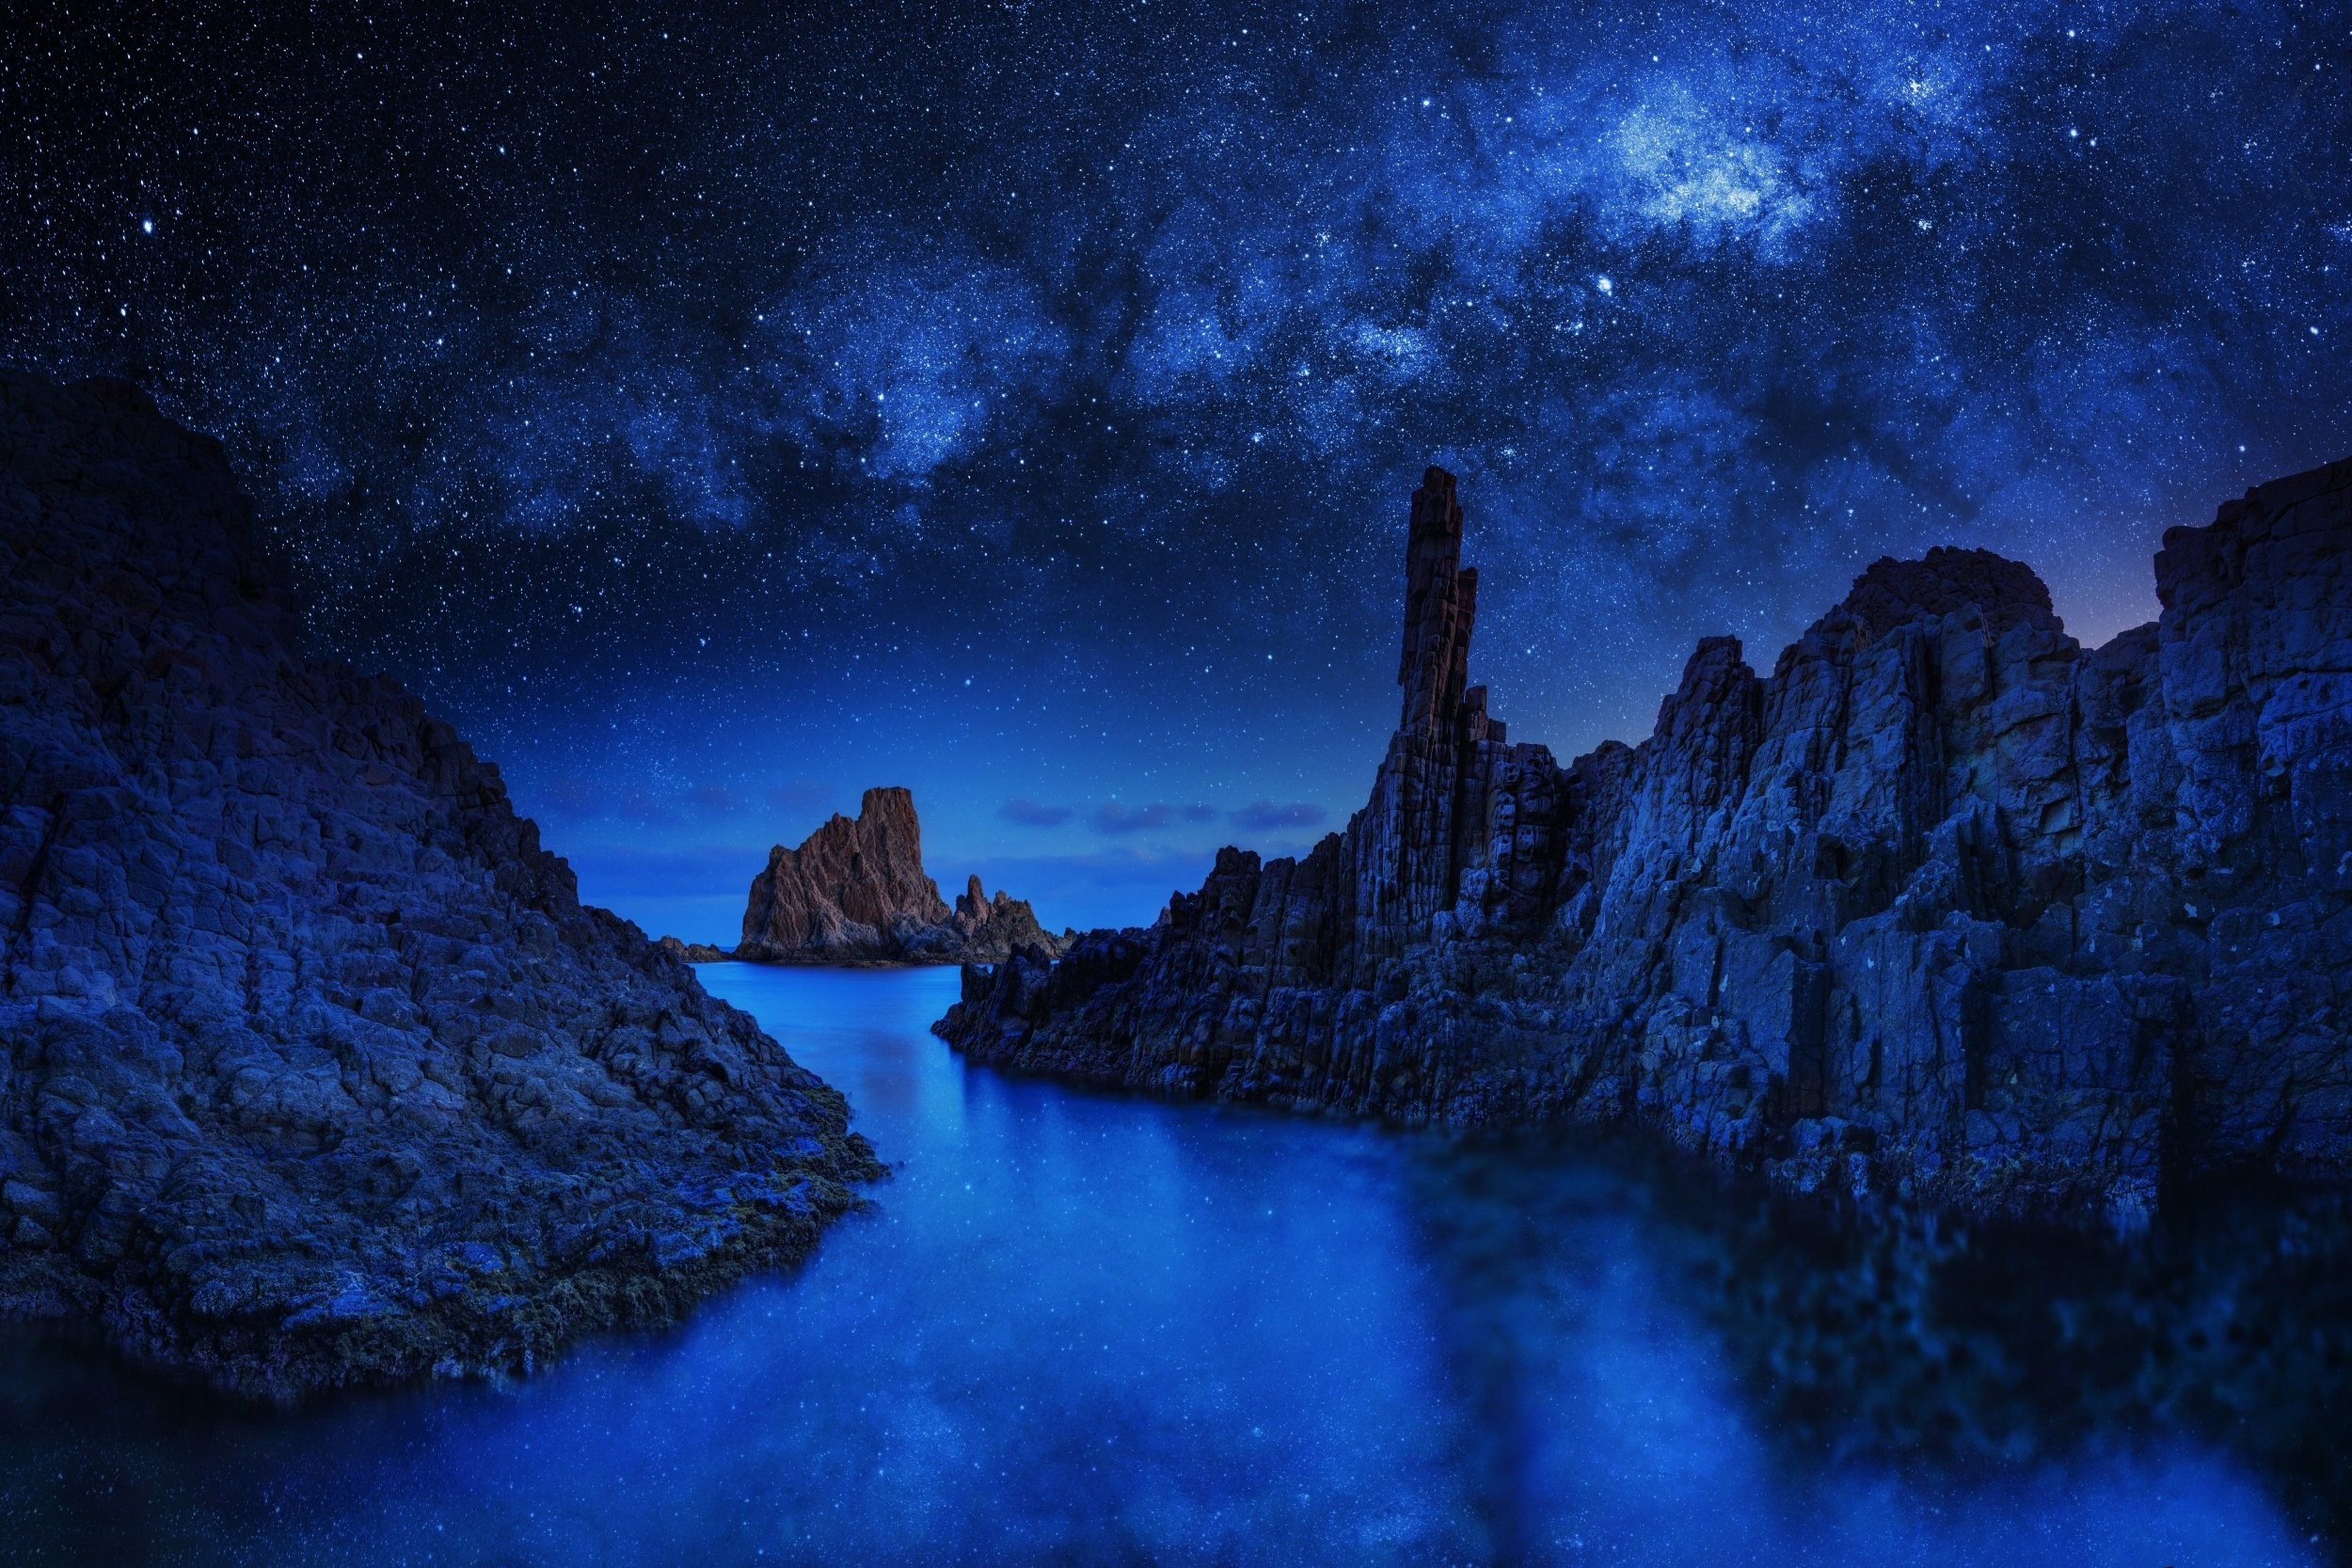 river ocean sea stars sky blue night mood reflection wallpaper .